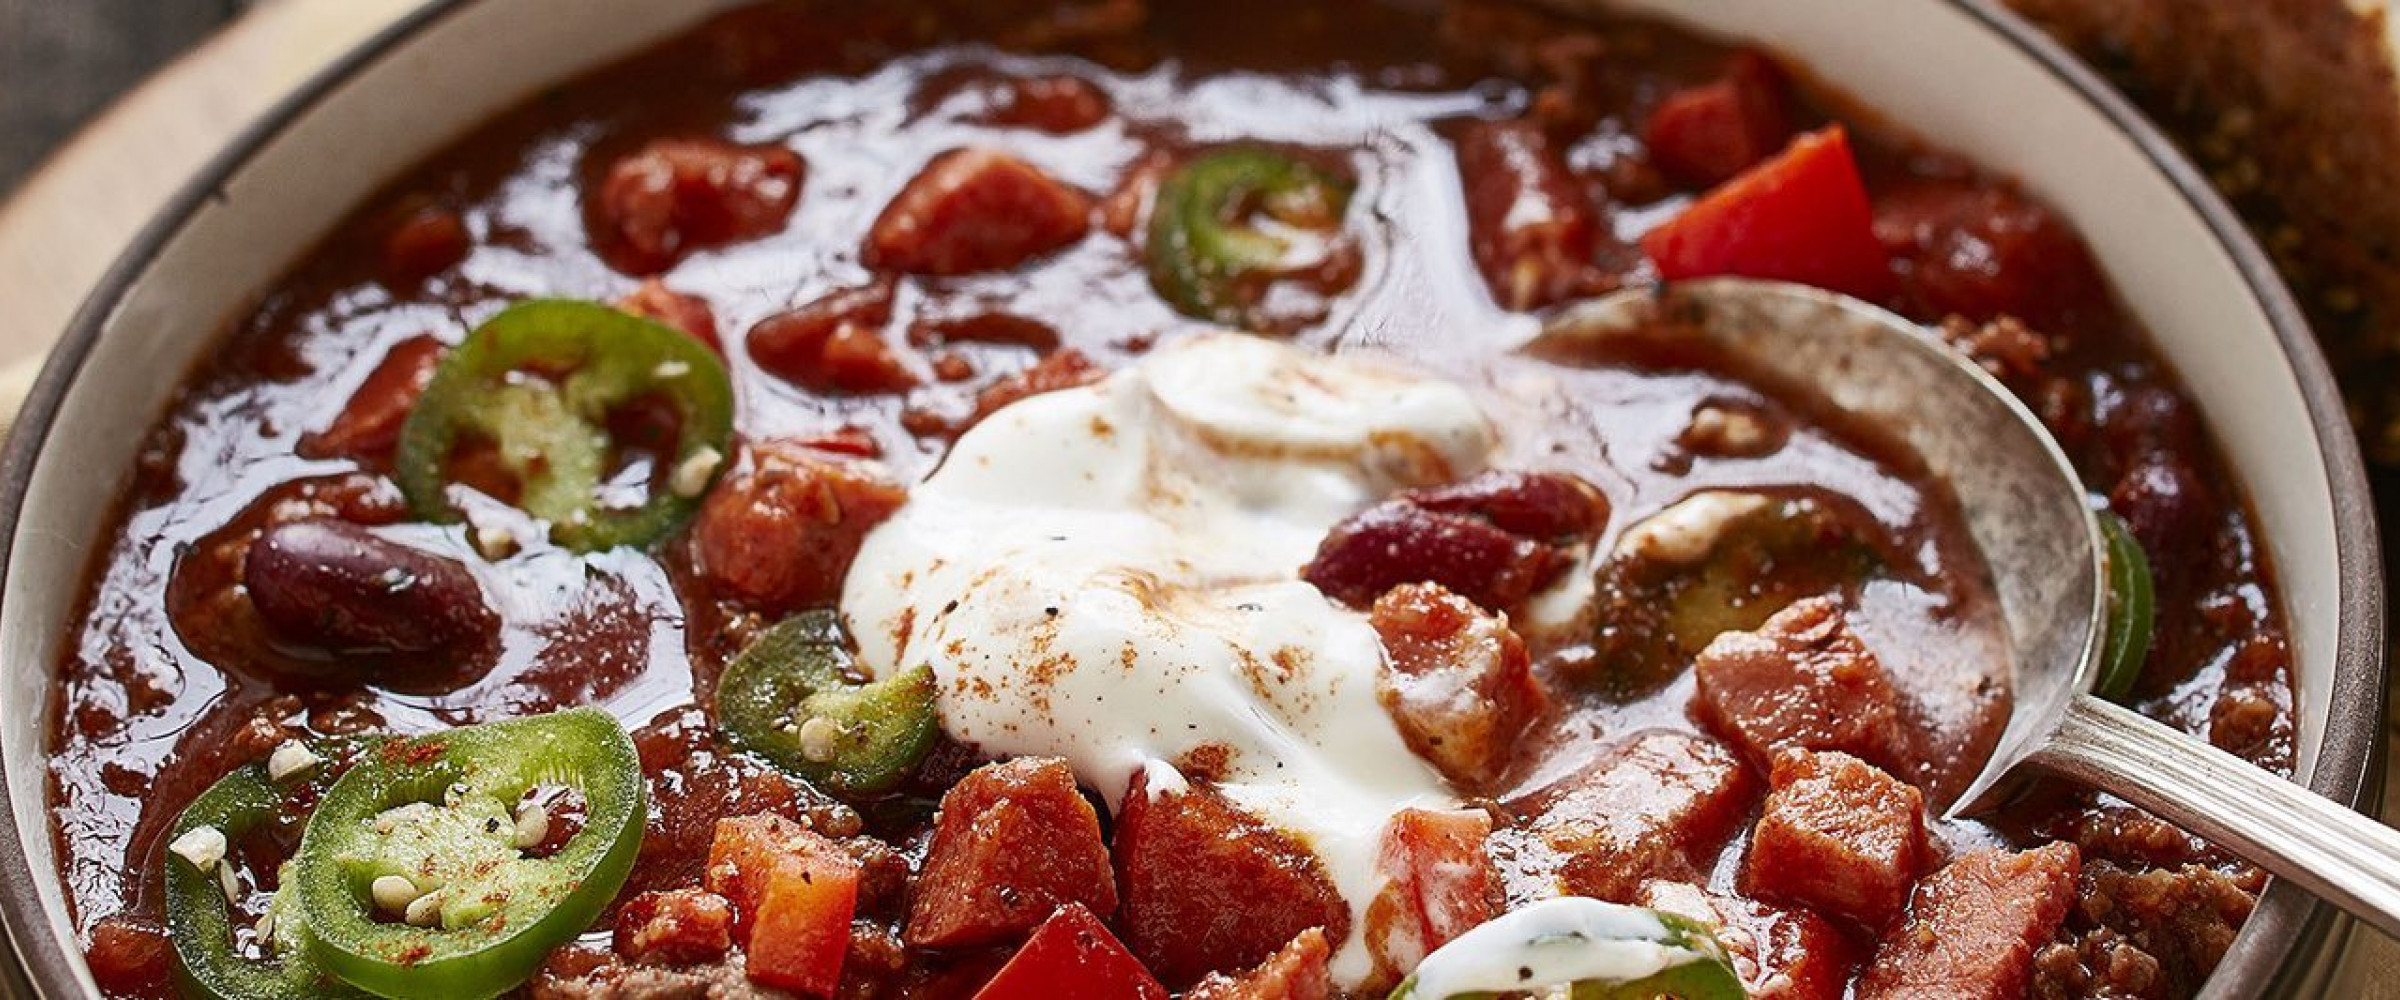 Bowl of chorizo and beef chili with sour cream on top